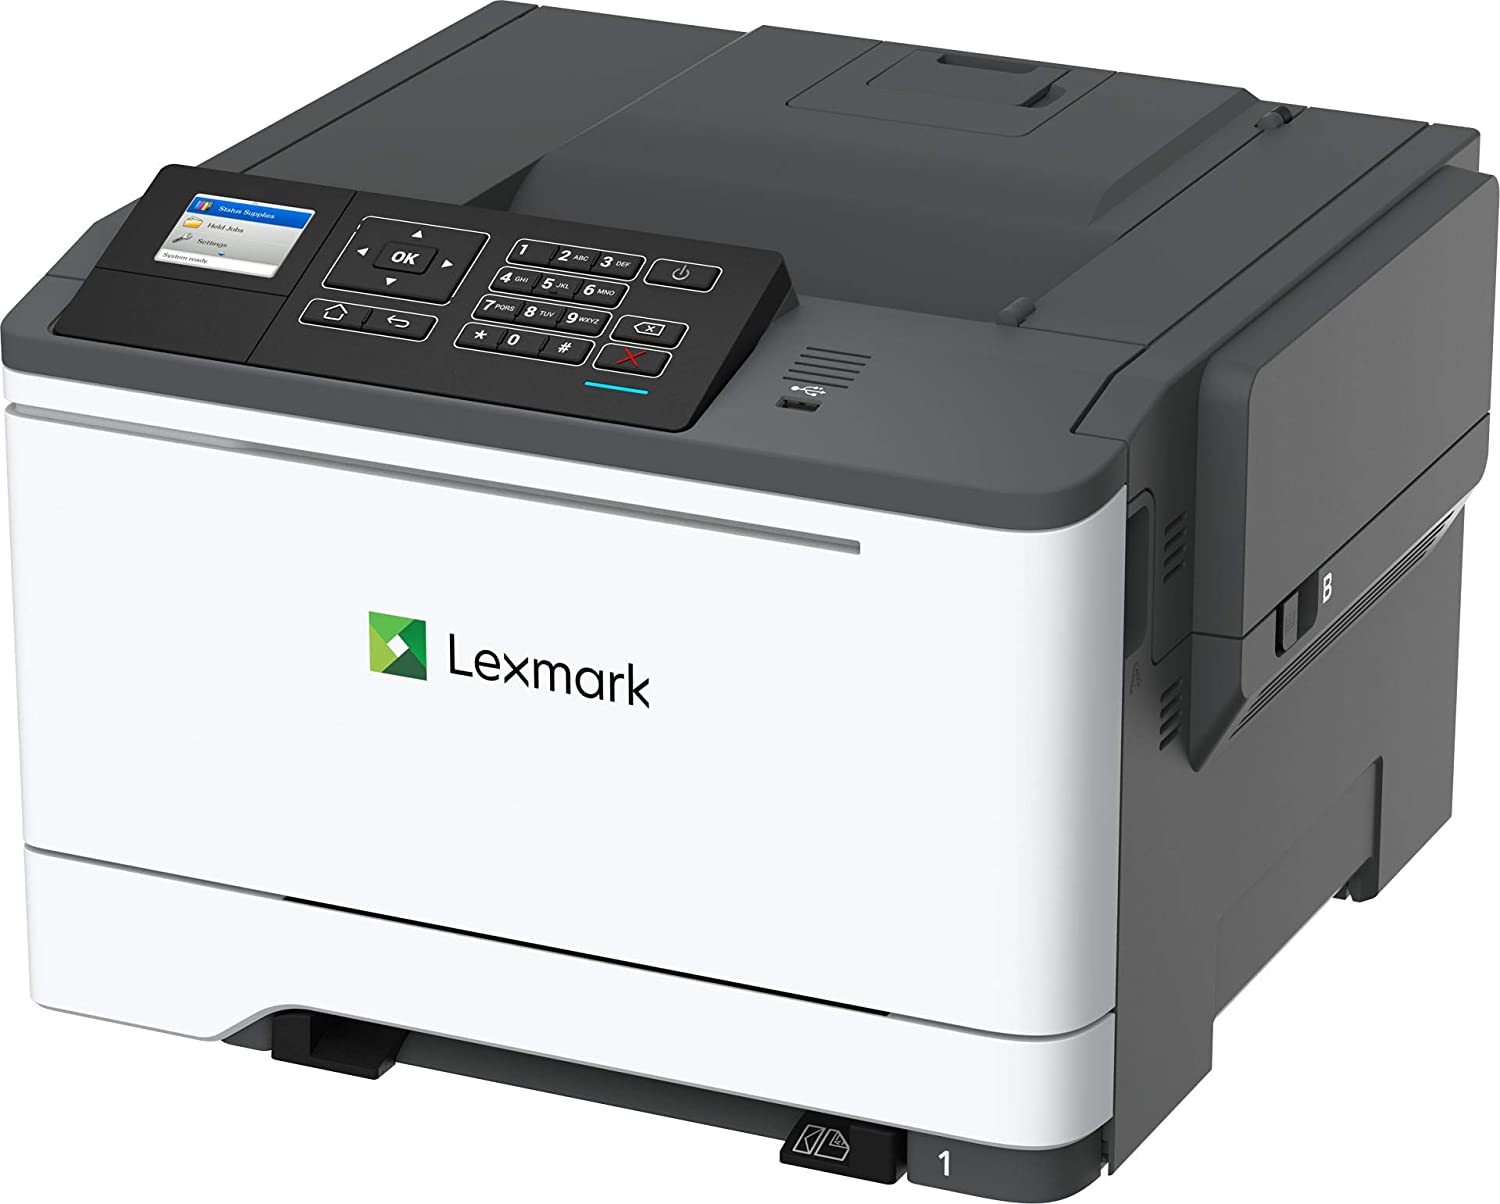 Lexmark C2535dw Color Laser Printer with Duplex Printing, Wireless Connection, and 35 ppm (42CC160), White/ Gray, Medium